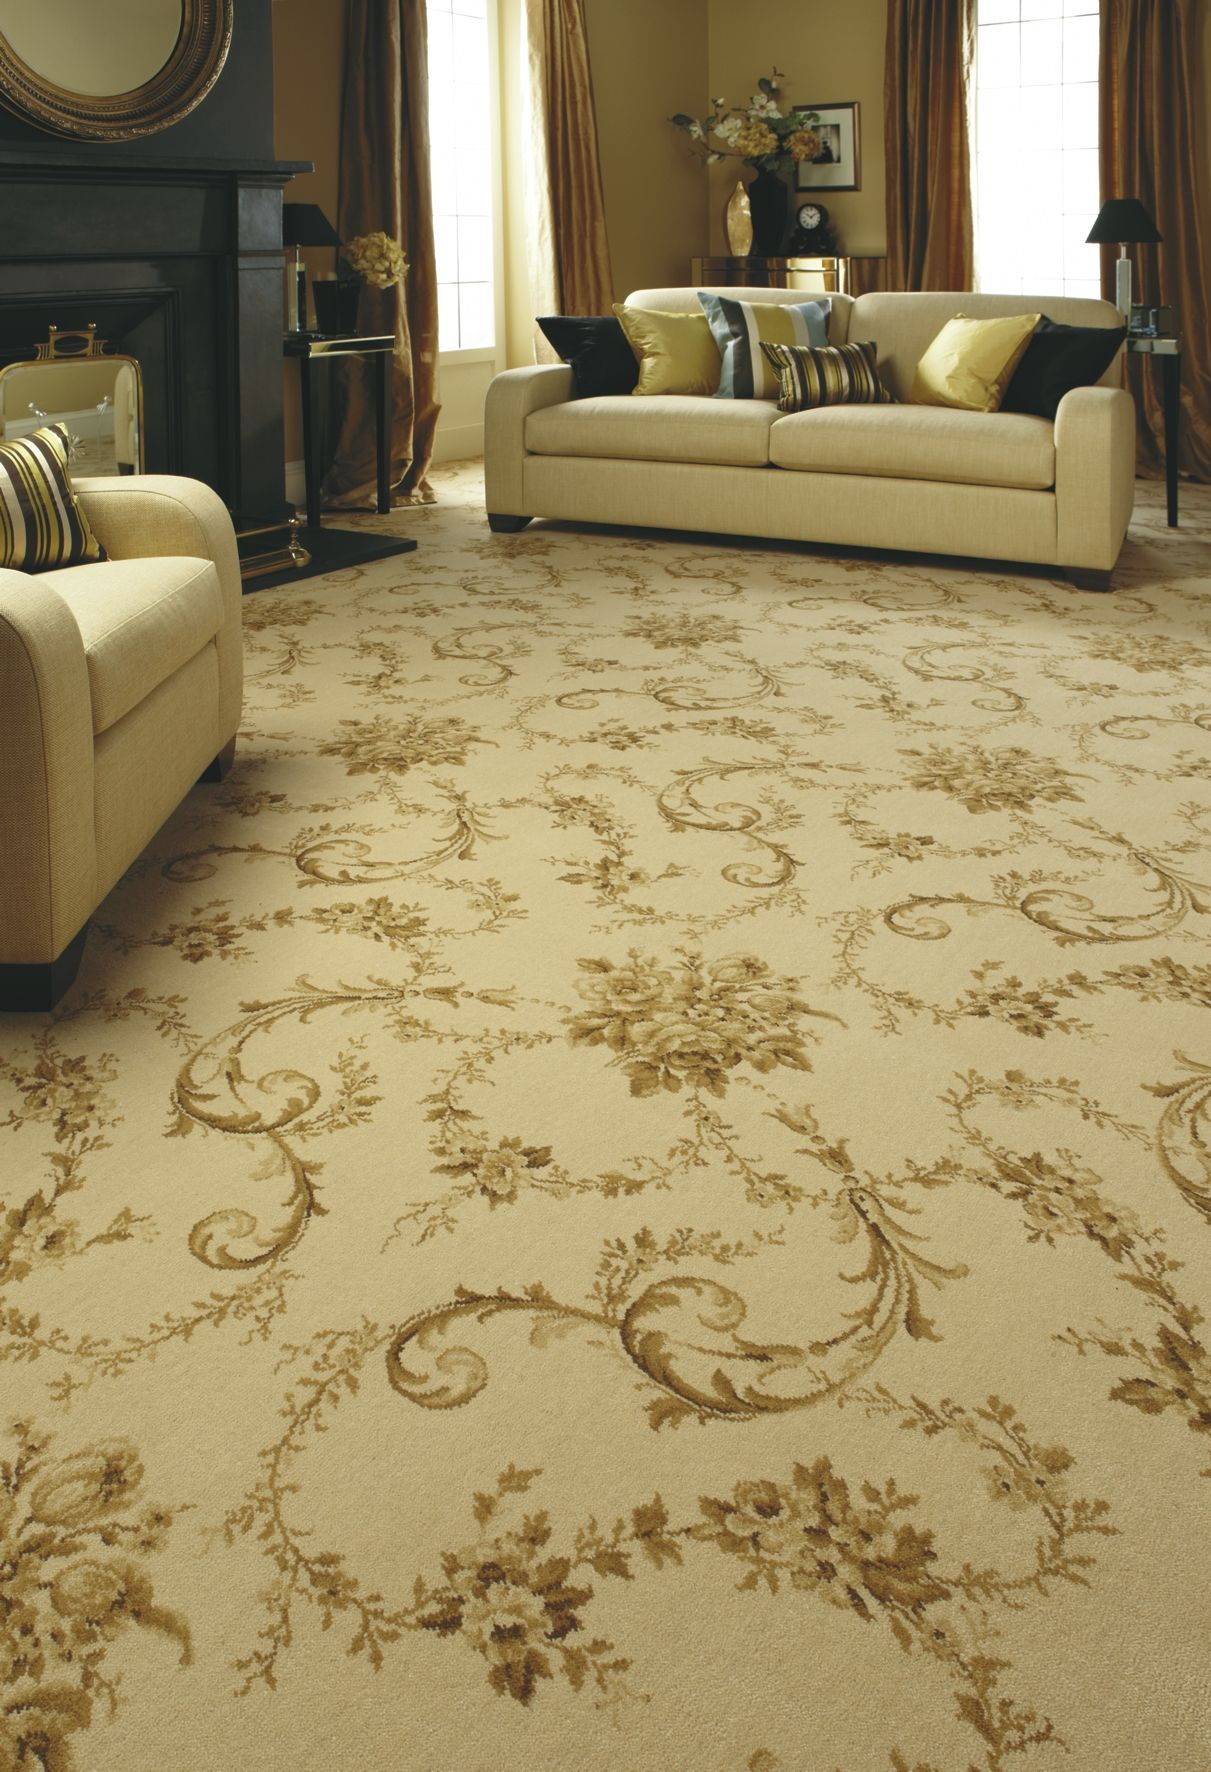 axminster carpets - versailles in soft cream   house ideas